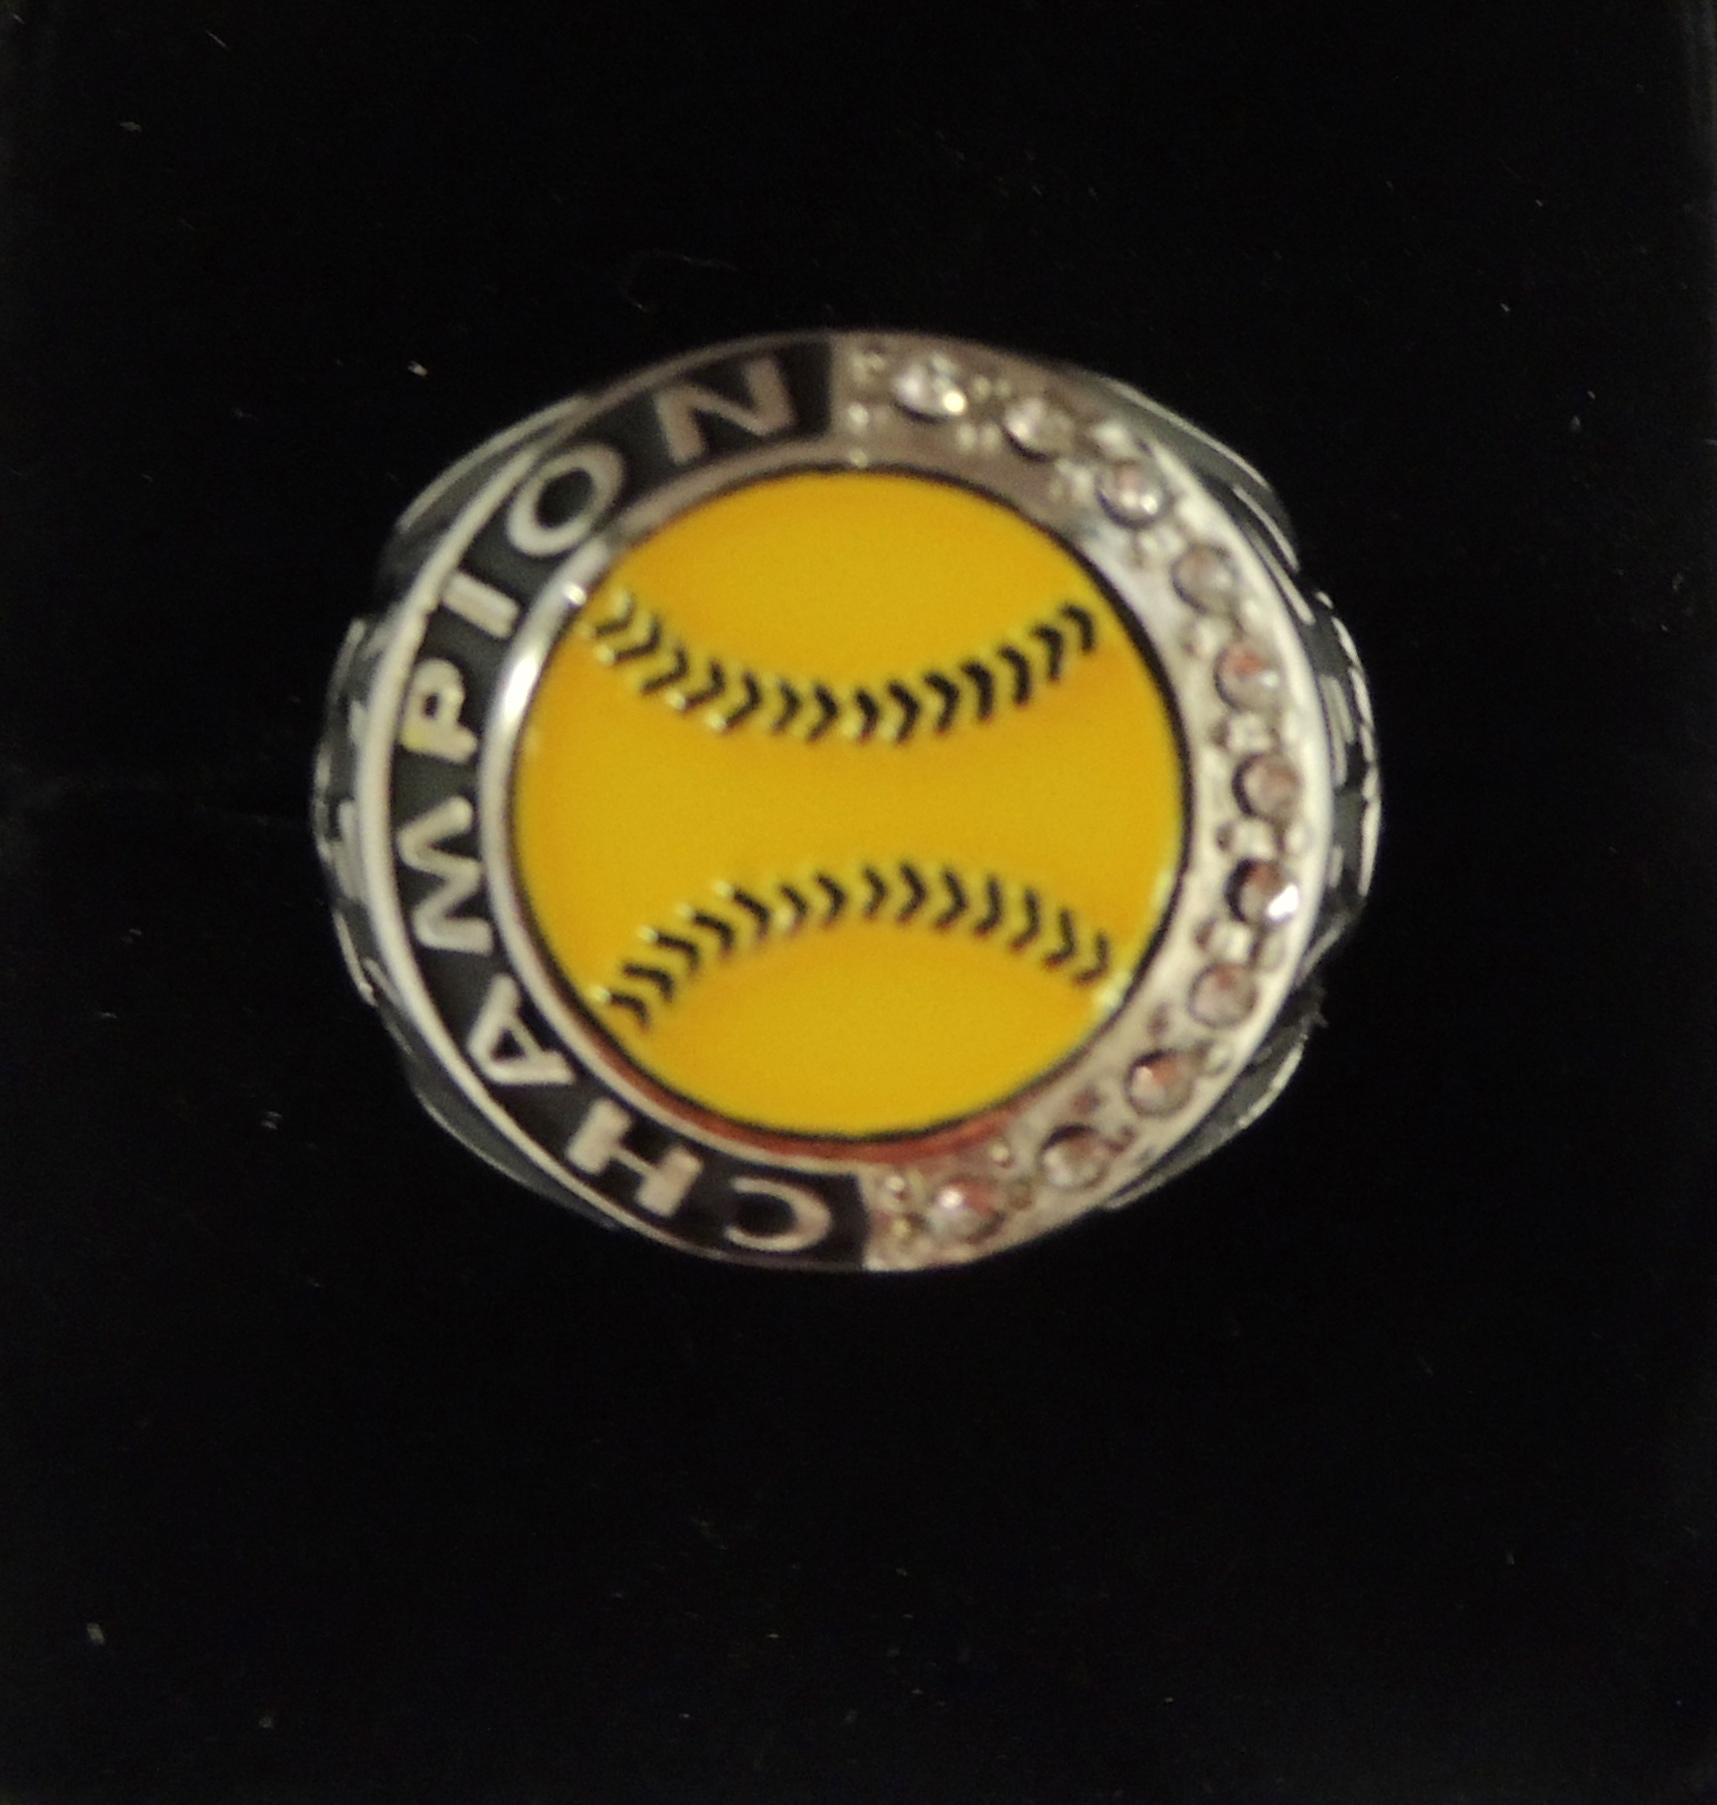 women metals white gold silver rings keepsake plus com walmart valadium softball ring available in and personalized yellow s square ip class